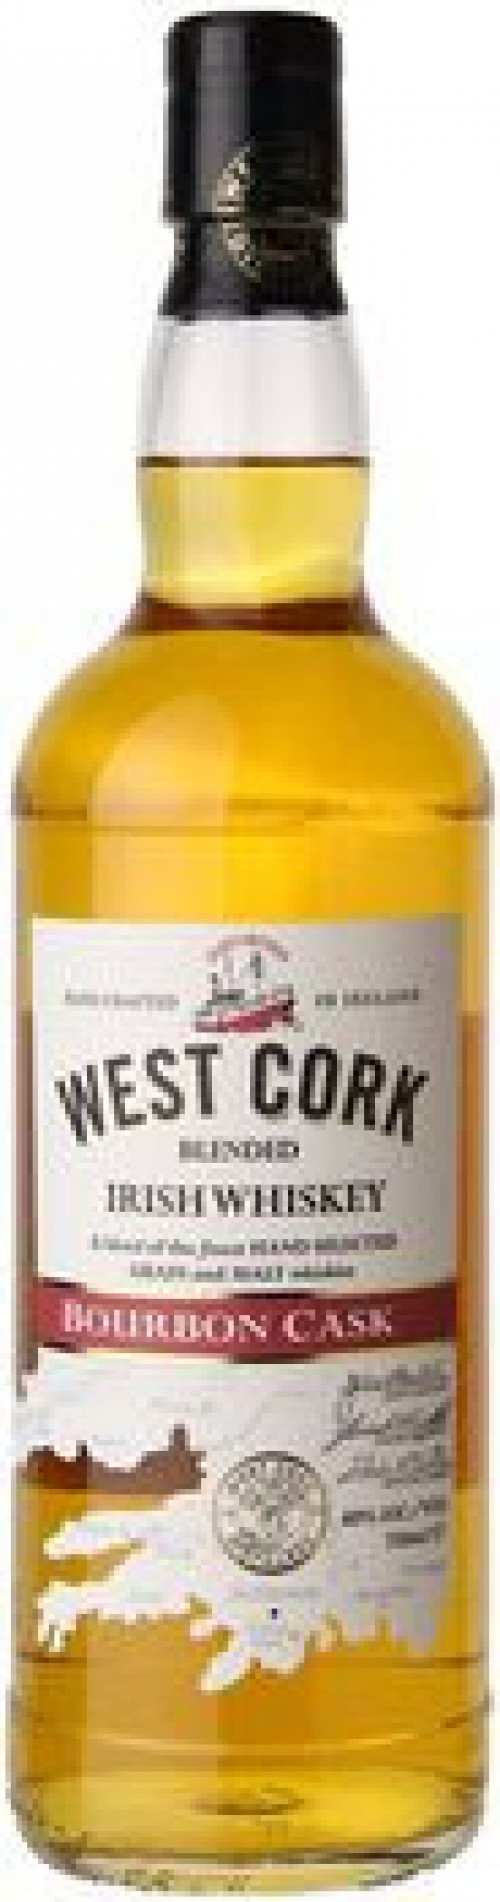 West Cork Bourbon Cask Irish Whiskey 750ml